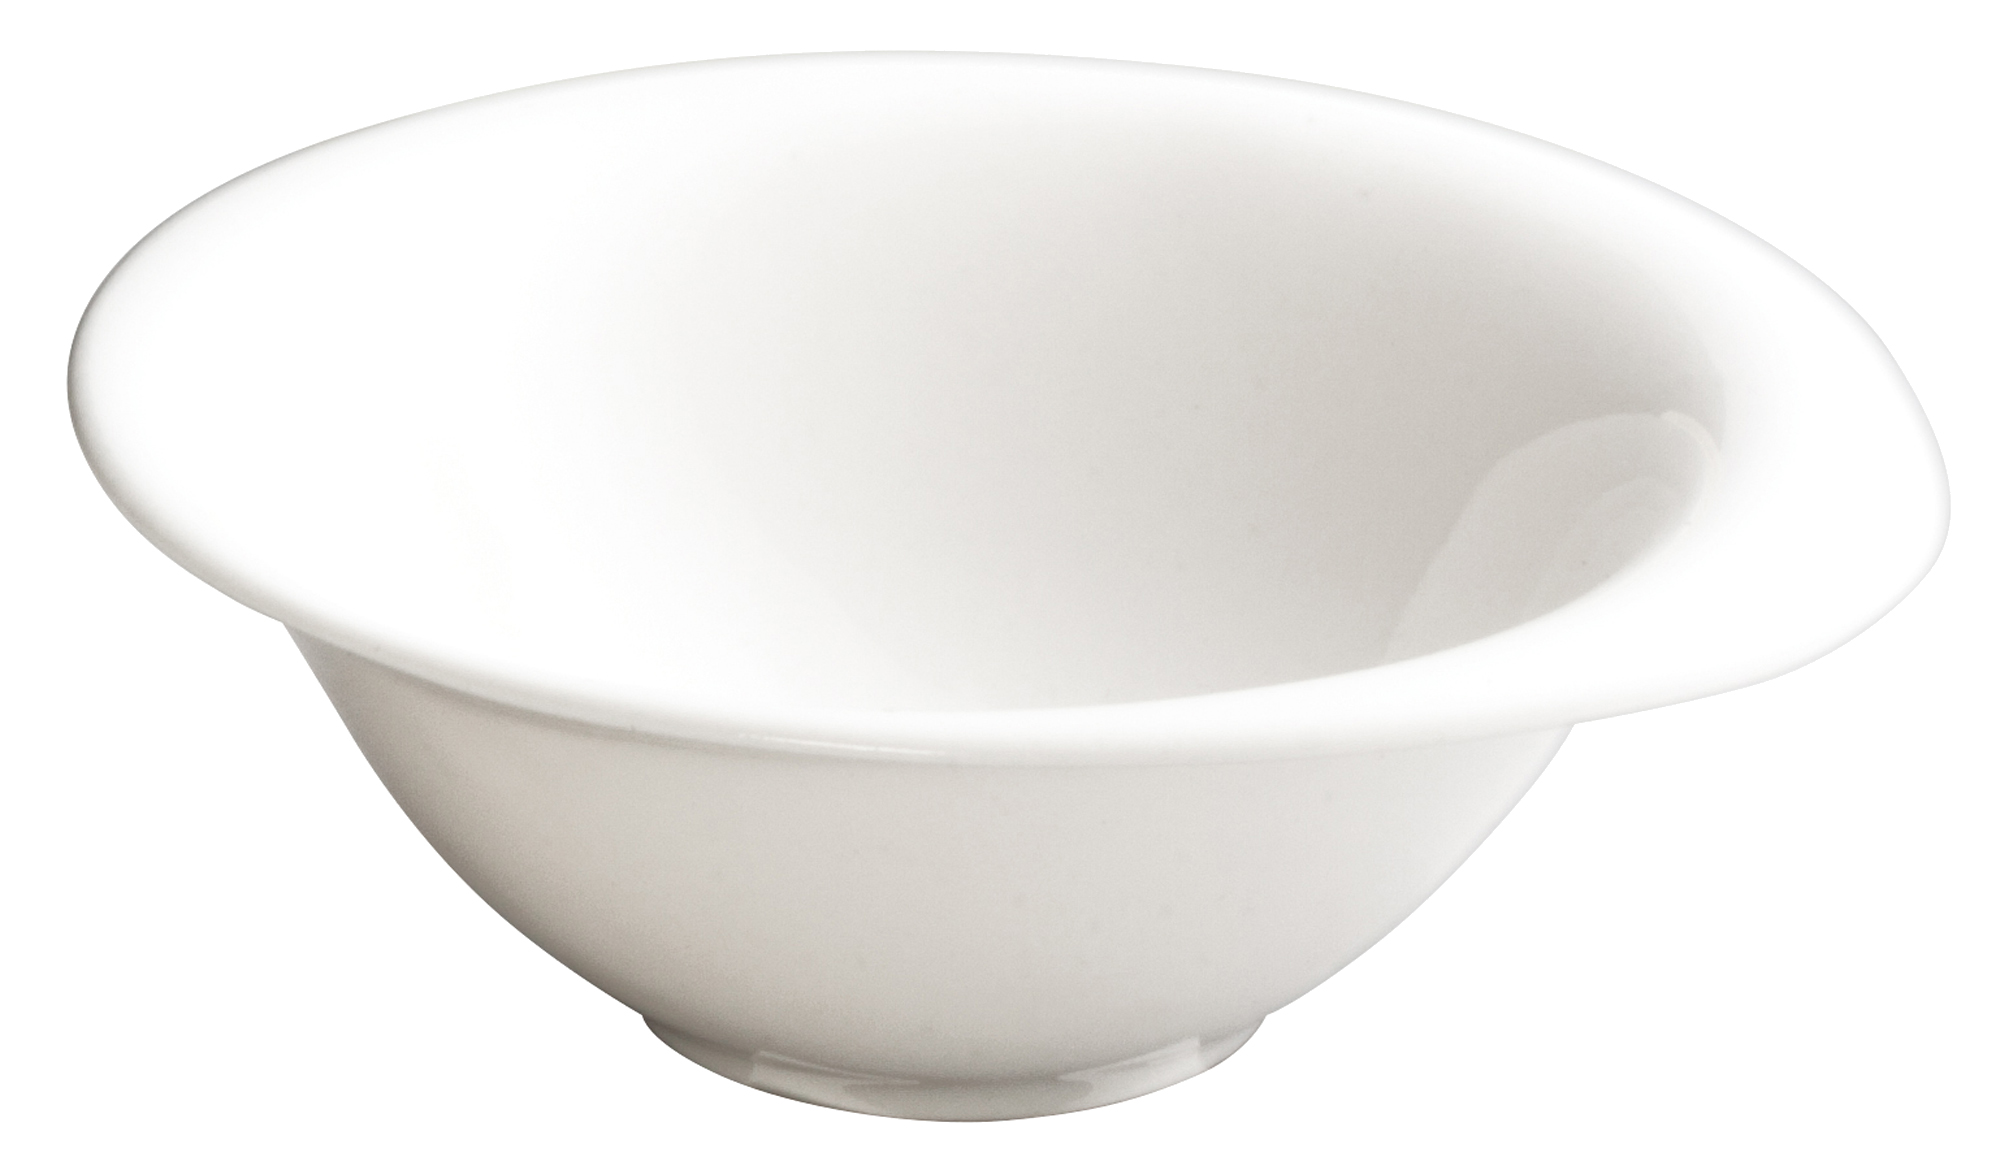 Winco WDP004-205 china, bowl,  0 - 8 oz